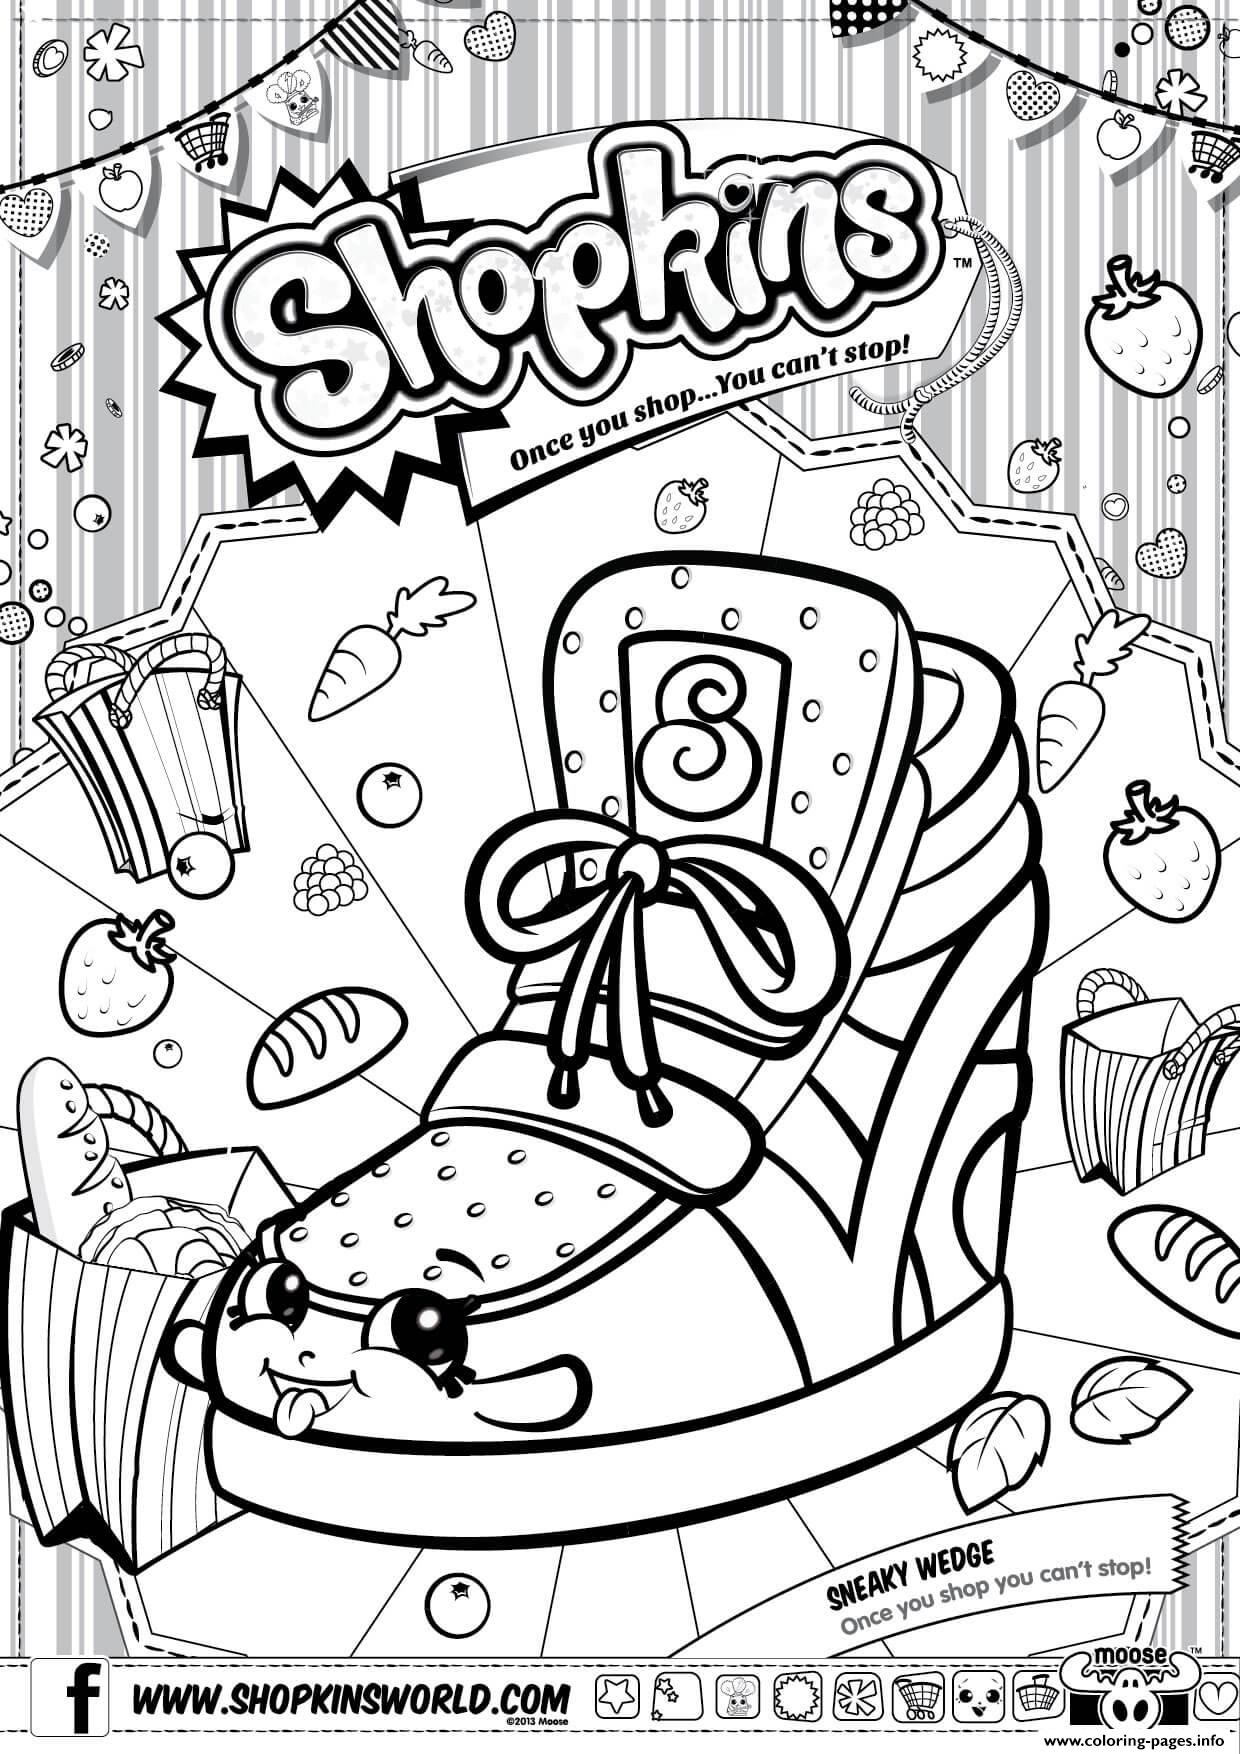 Shopkins coloring pages to print out - Shopkins Coloring Pages To Print Out 5